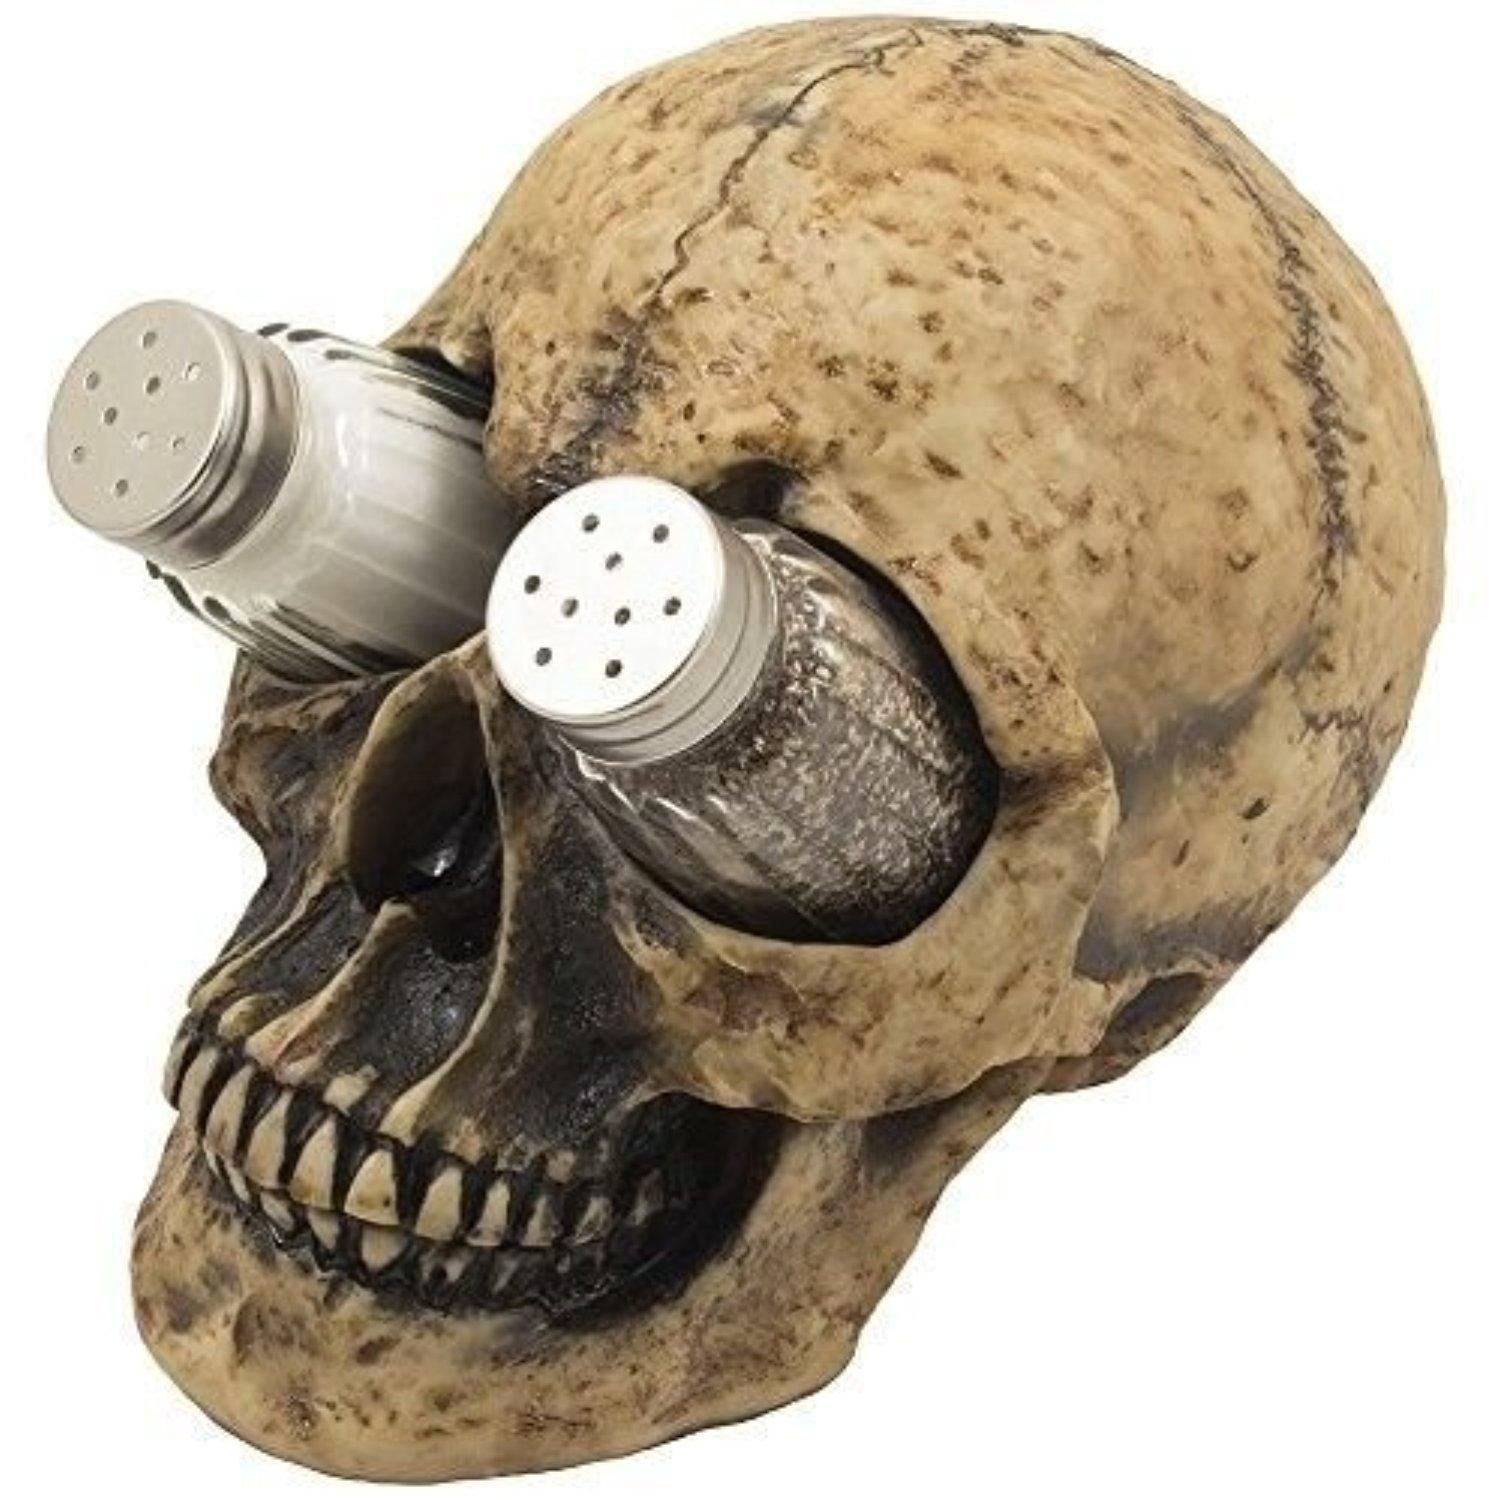 Halloween Human Skull Salt and Pepper Shaker Holder Set Skeleton Spooky Decor - Brought to you by Avarsha.com